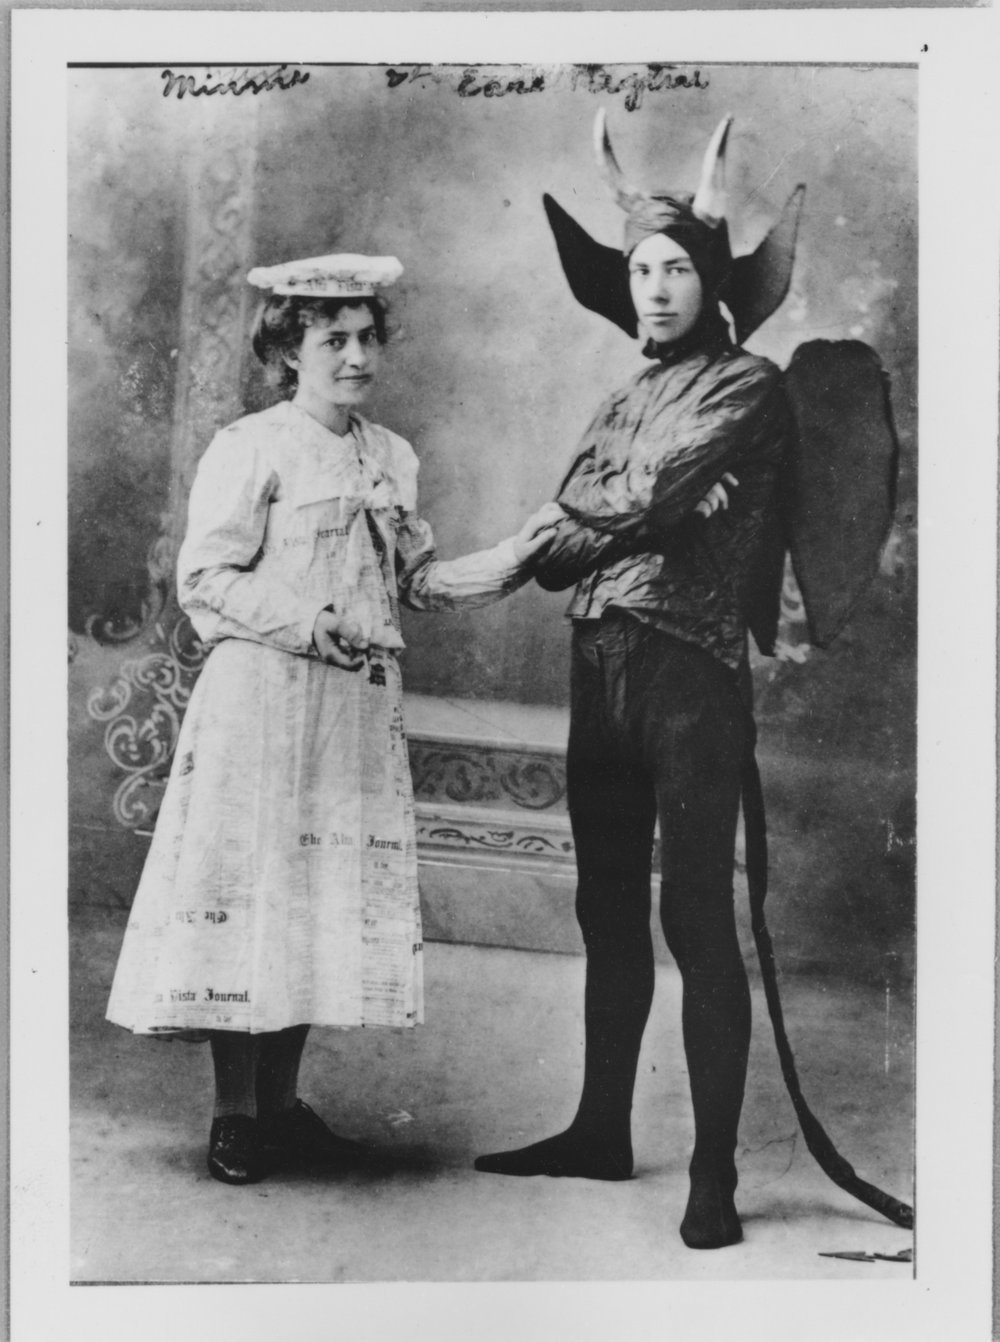 Minnie and Earl Biglin in costumes